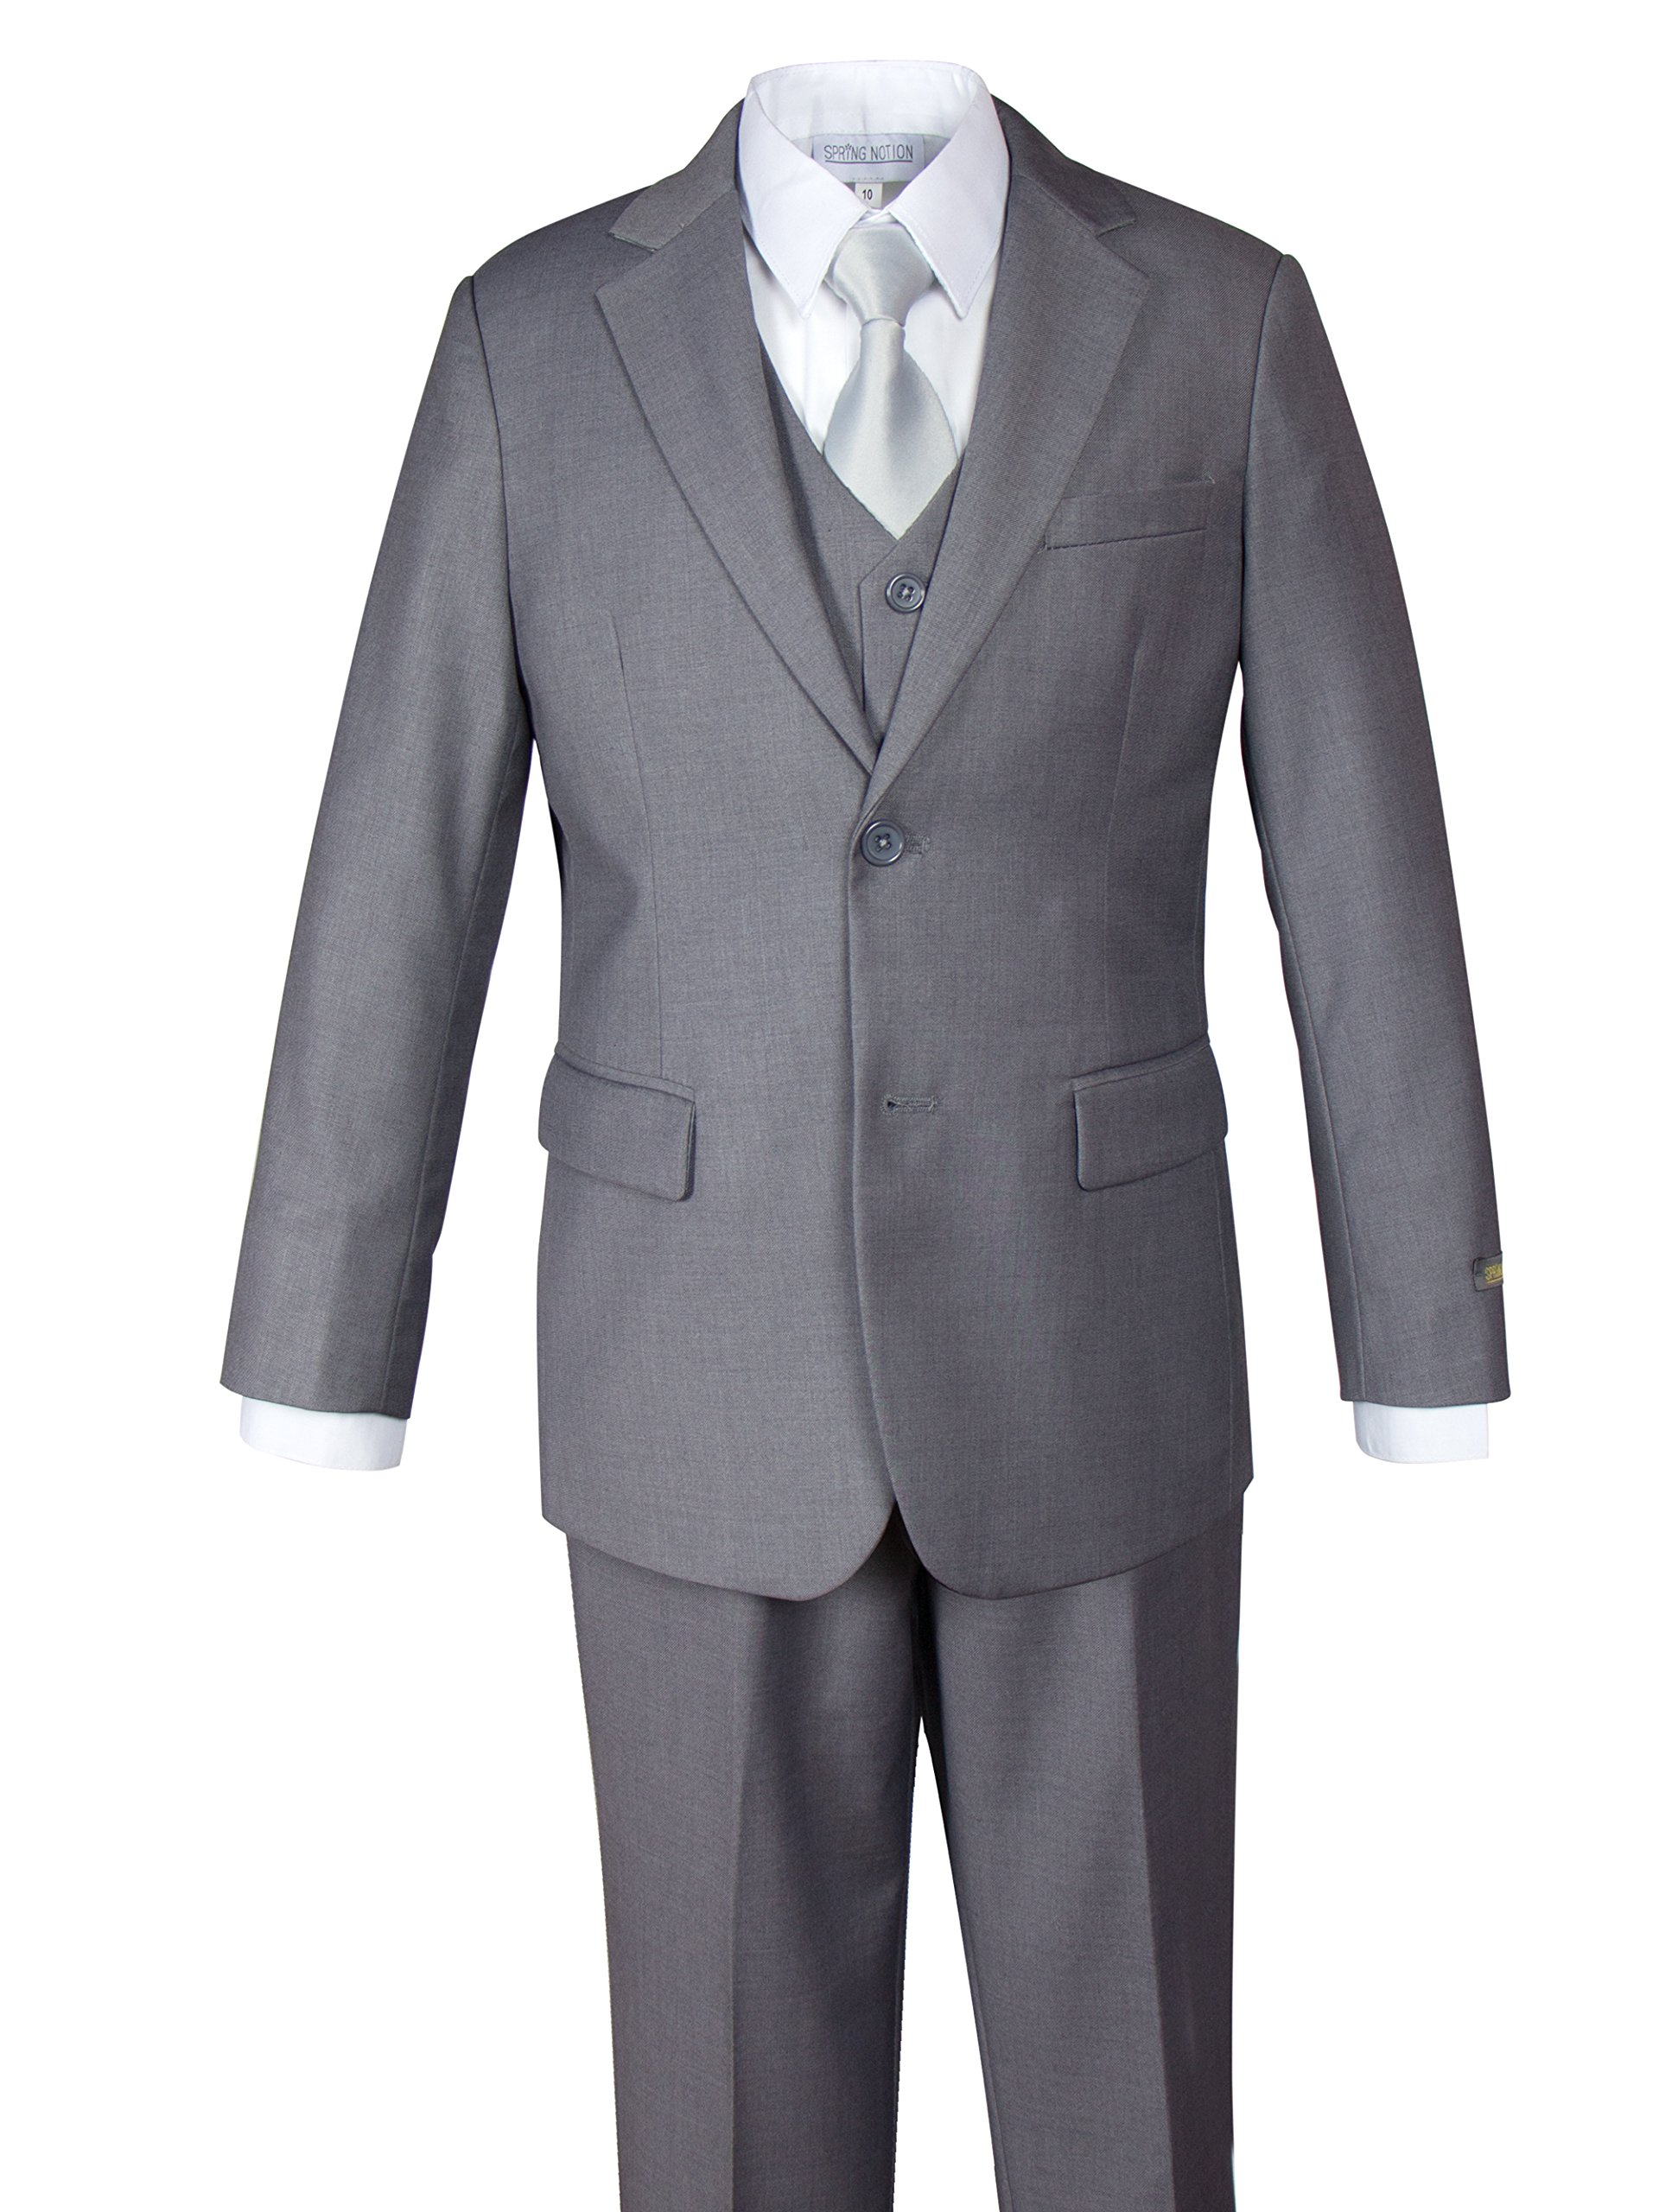 Spring Notion Big Boys' Two-Button 5-Piece Suit Set 8 Grey-Solid Silver